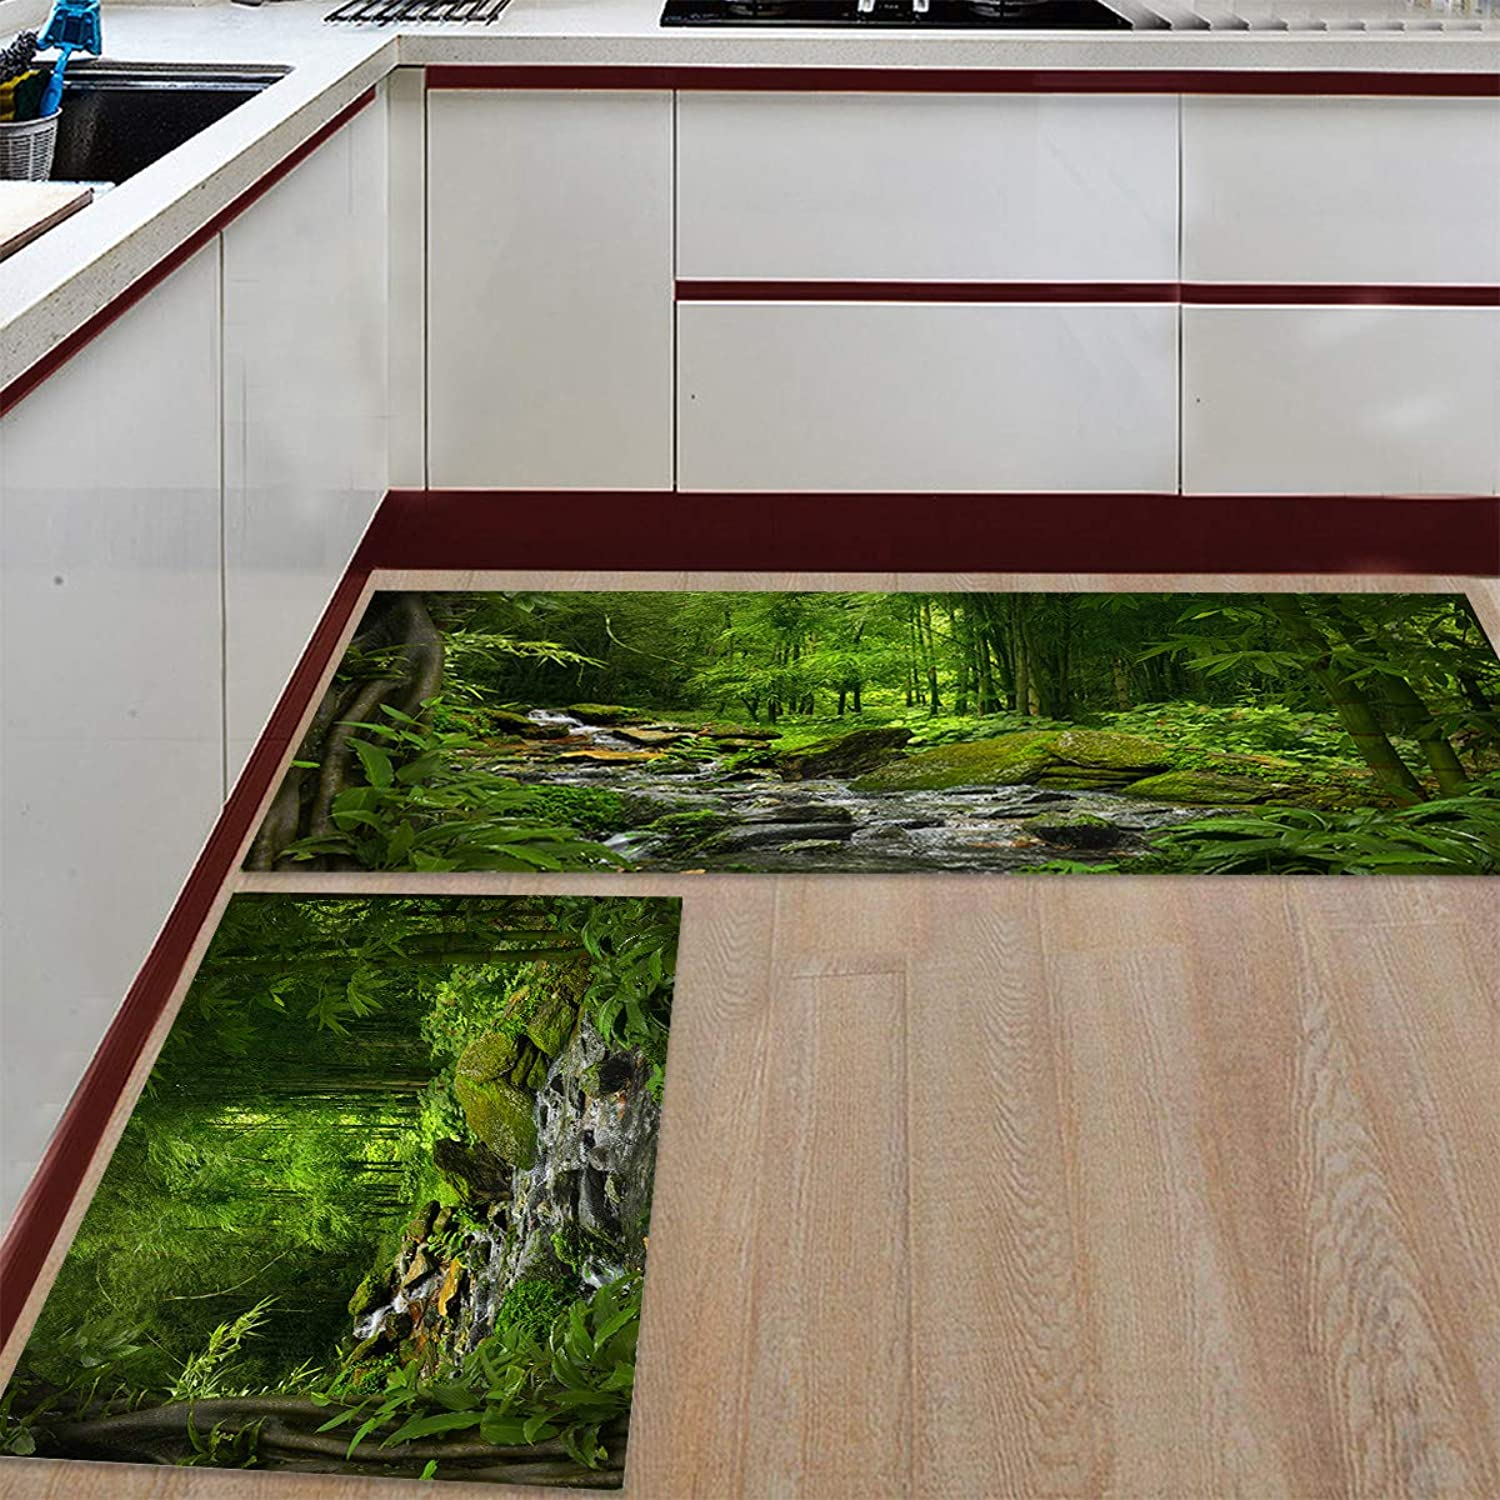 Kitchen Rugs Sets 2 Piece Floor Mats Bamboo Forest Rainforest Vivifying Stream Doormat Non-Slip Rubber Backing Area Rugs Washable Carpet Inside Door Mat Pad Sets (23.6  x 35.4 +23.6  x 70.9 )